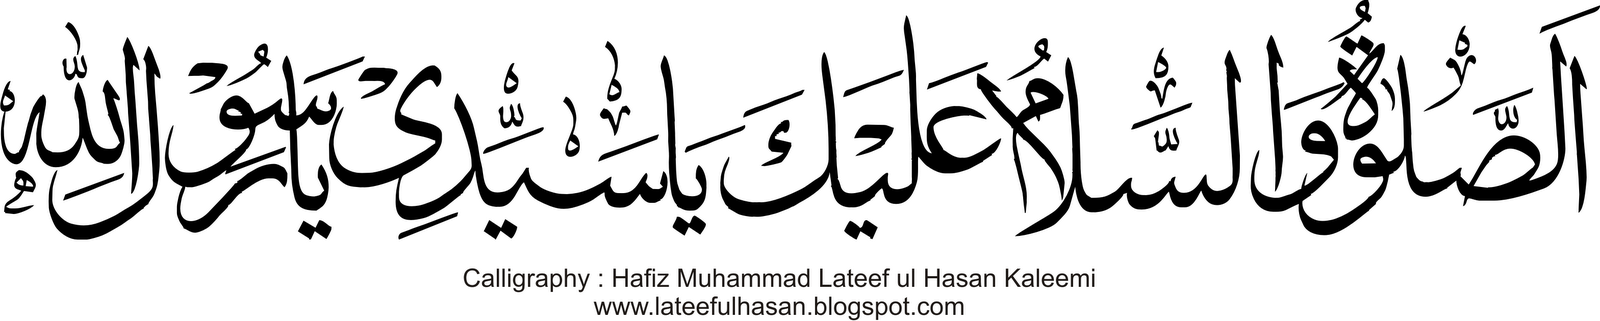 Computer Learning Tutorials in Urdu: Khattati (Calligraphy) Facebook Comment Photo Download